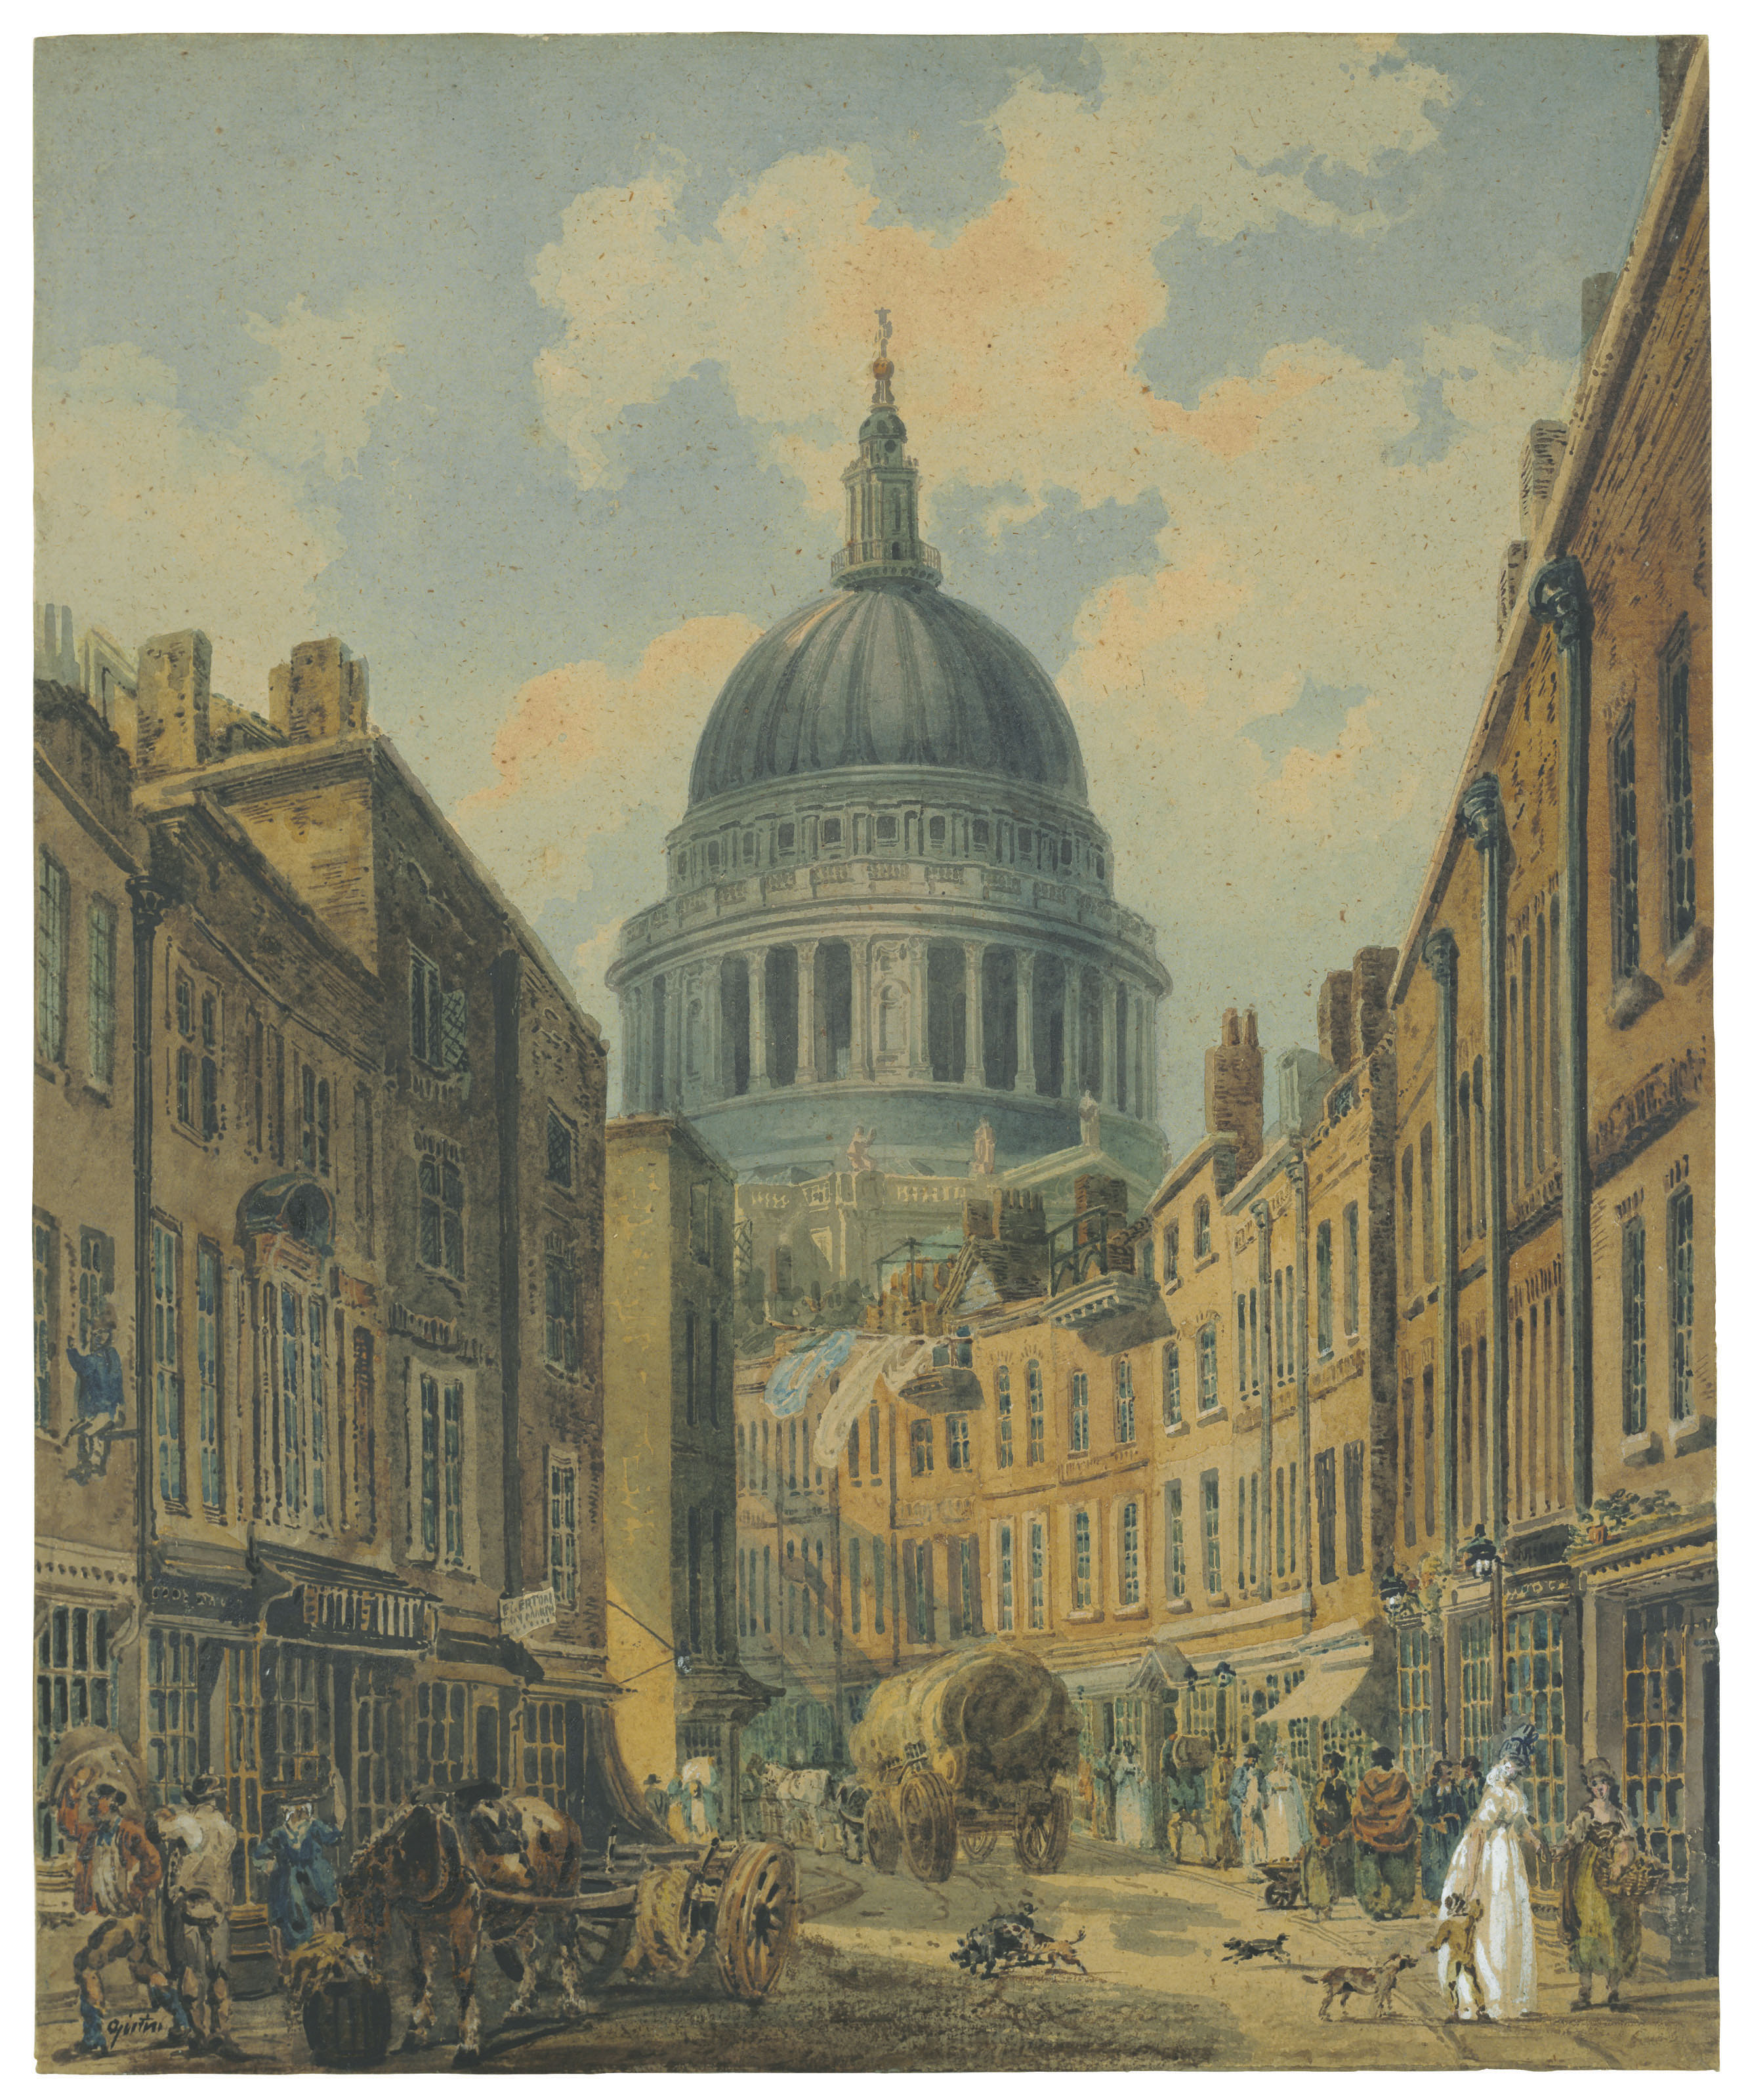 St. Paul's Cathedral from St. Martin's-le-Grand, London